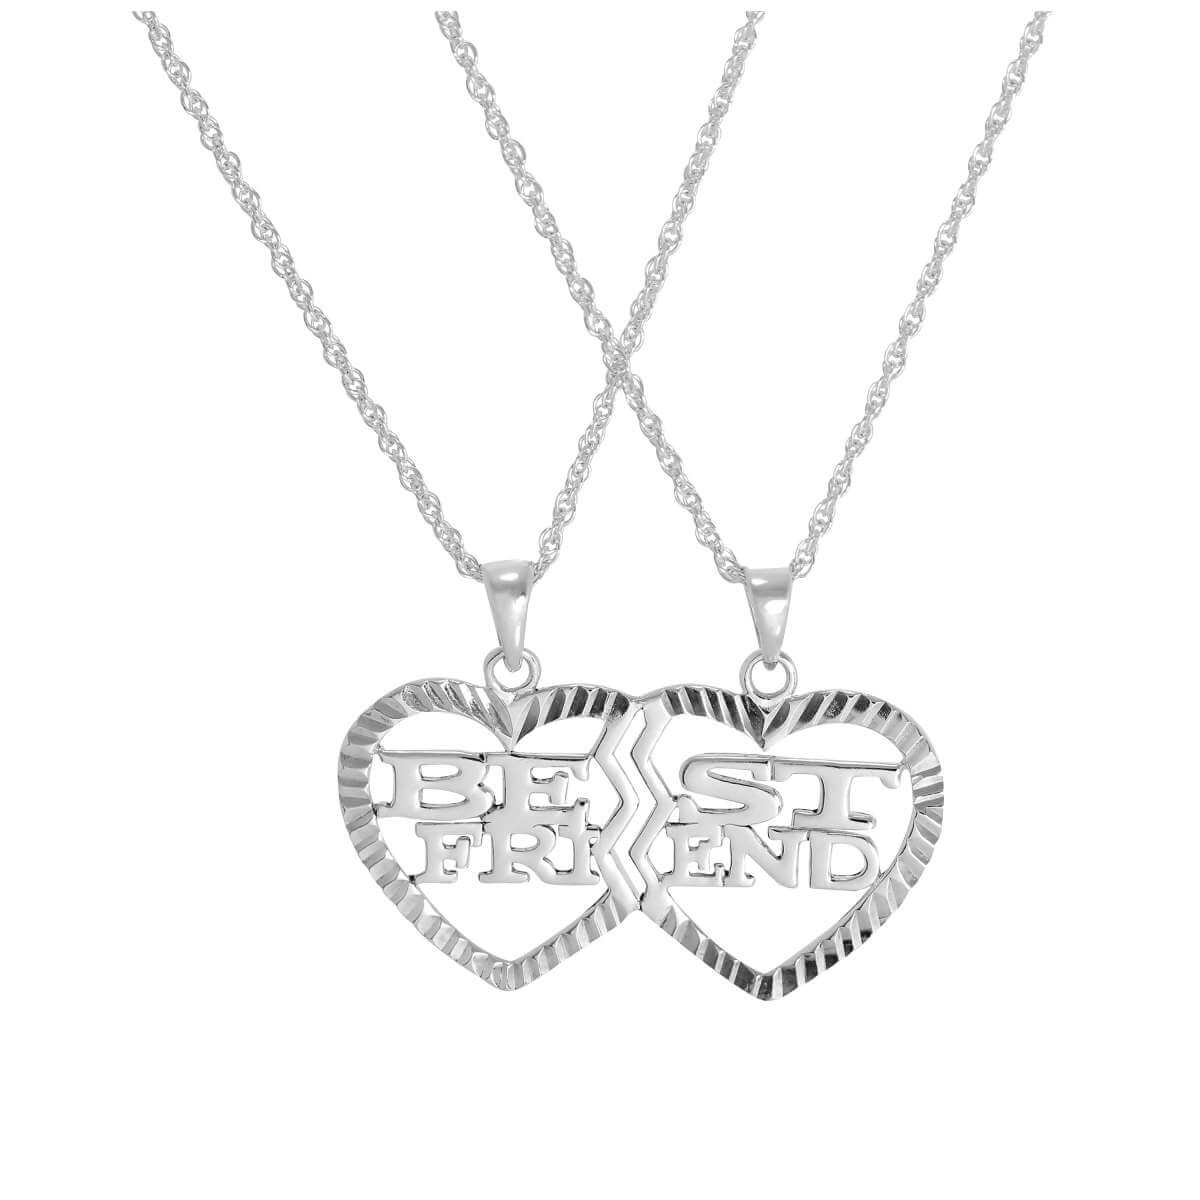 Sterling Silver Double Best Friends Heart Pendant Necklace 16 - 24 Inches